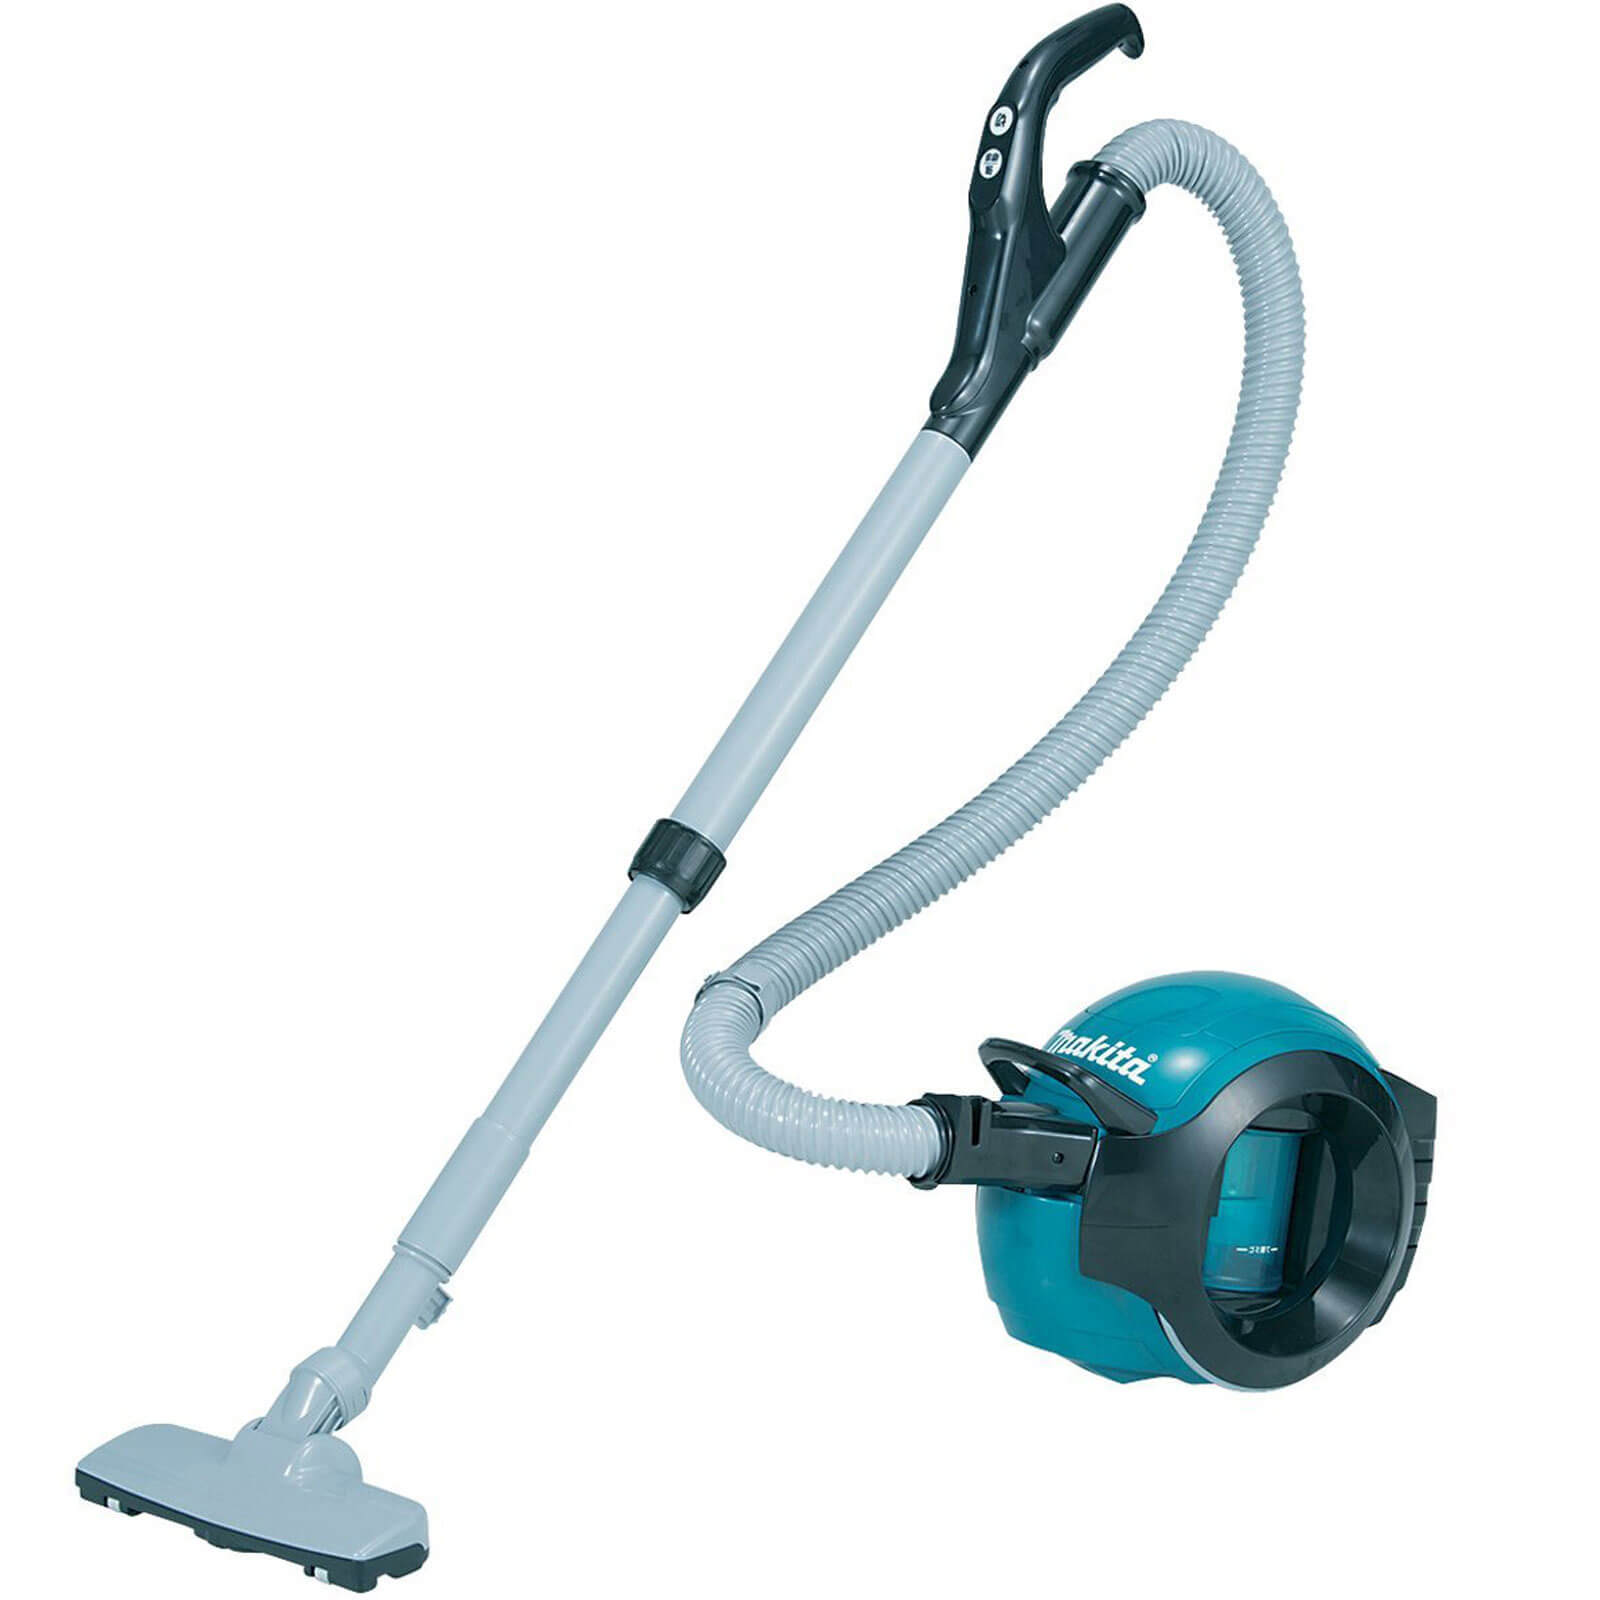 Image of Makita DCL500Z 18v Cordless Cyclone Vacuum Cleaner without Battery or Charger